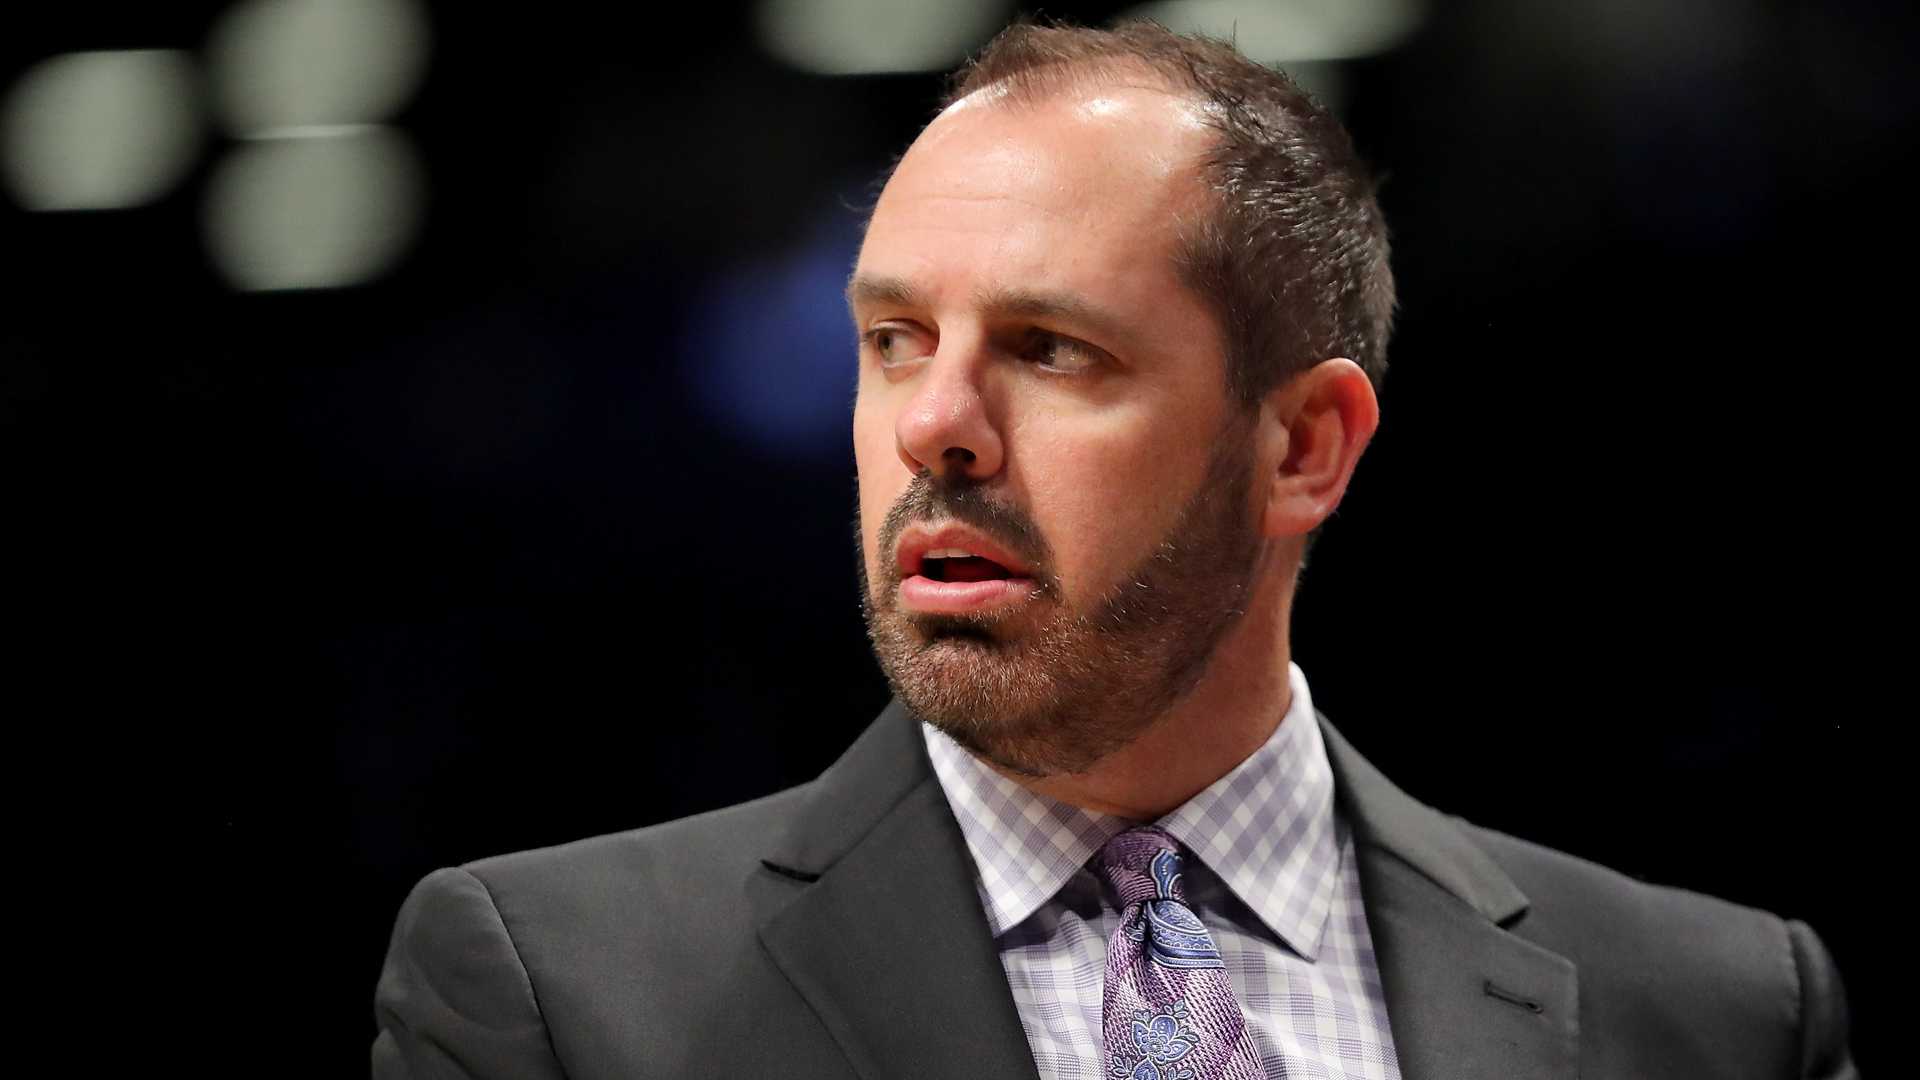 Frank Vogel reacts during a game at Barclays Center on Oct. 20, 2017, in New York City. (Credit: Abbie Parr/Getty Images)